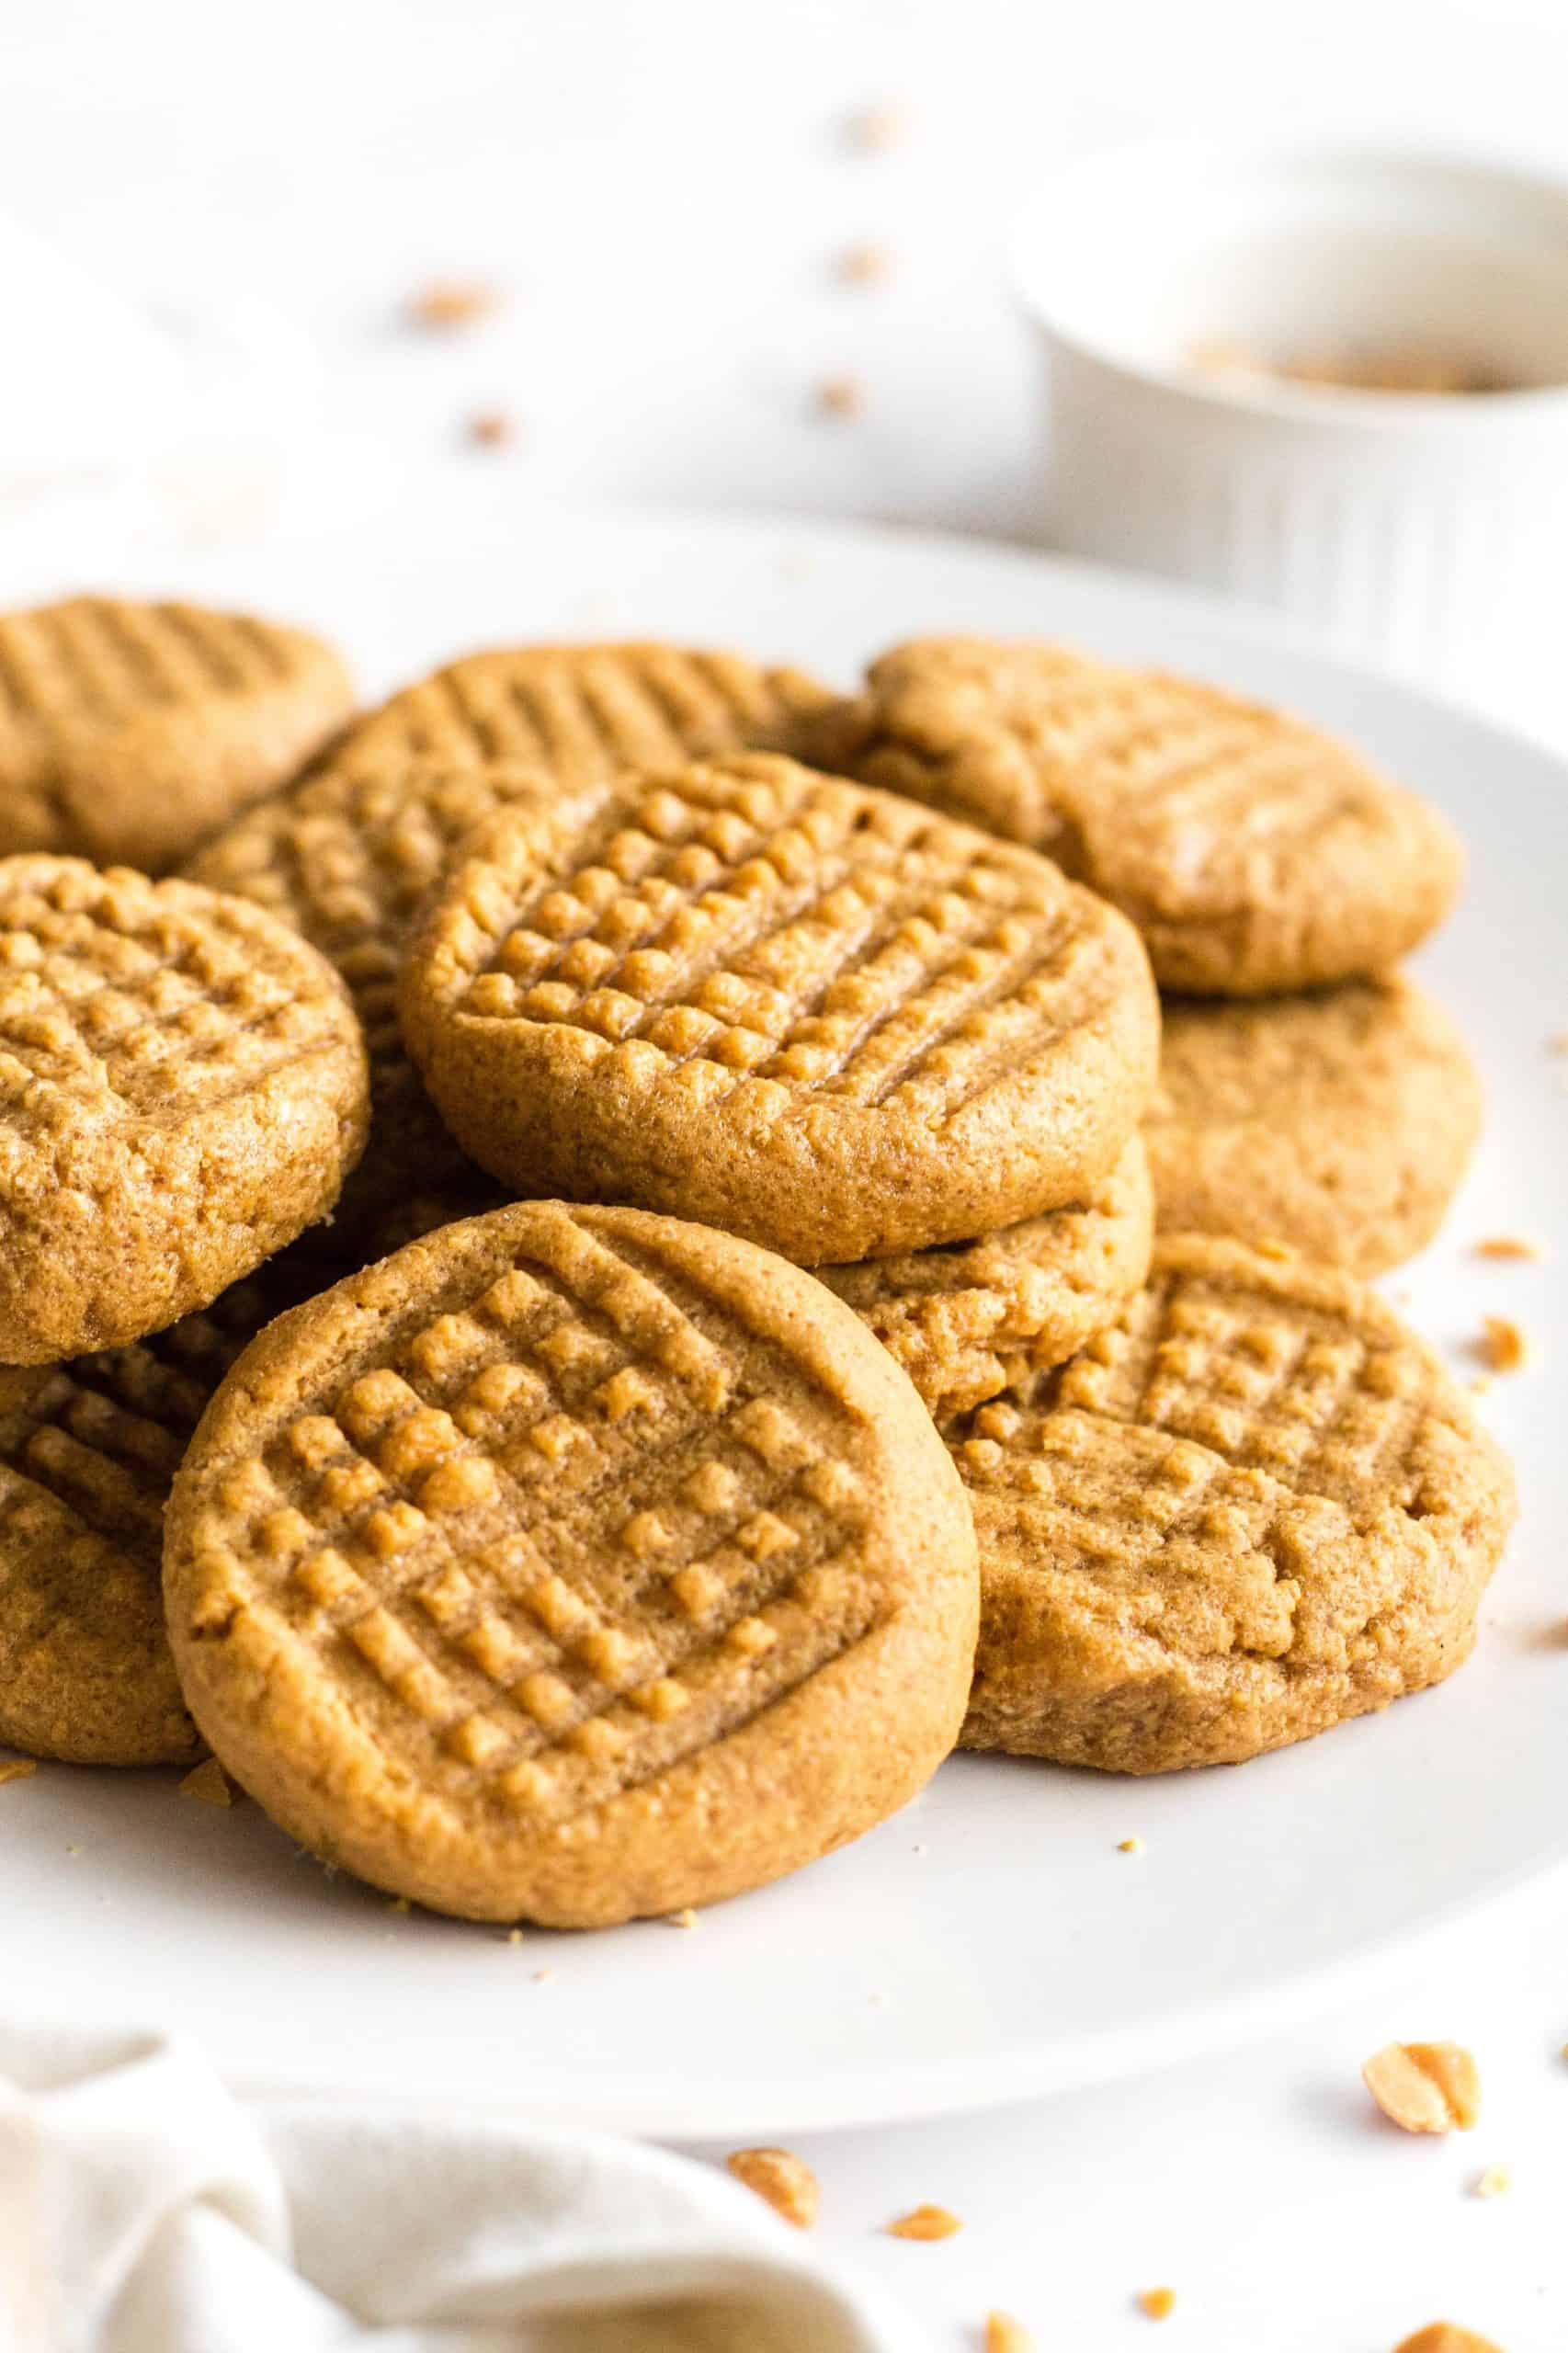 A plate full of flourless peanut butter cookies.